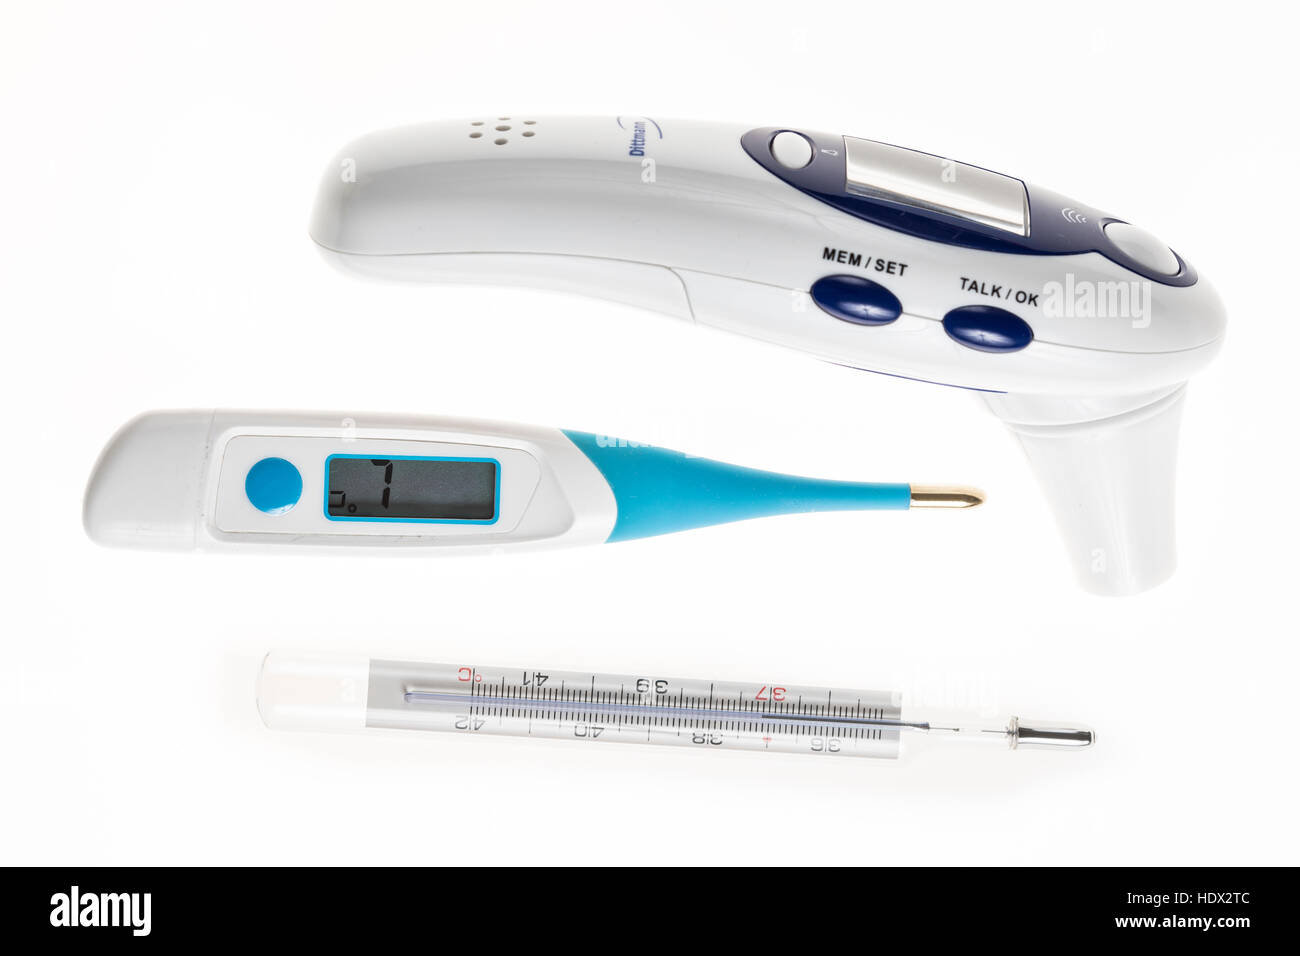 Fever thermometer, digital thermometer, digital mercury thermometer, temperature monitor, ear thermometer, - Stock Image